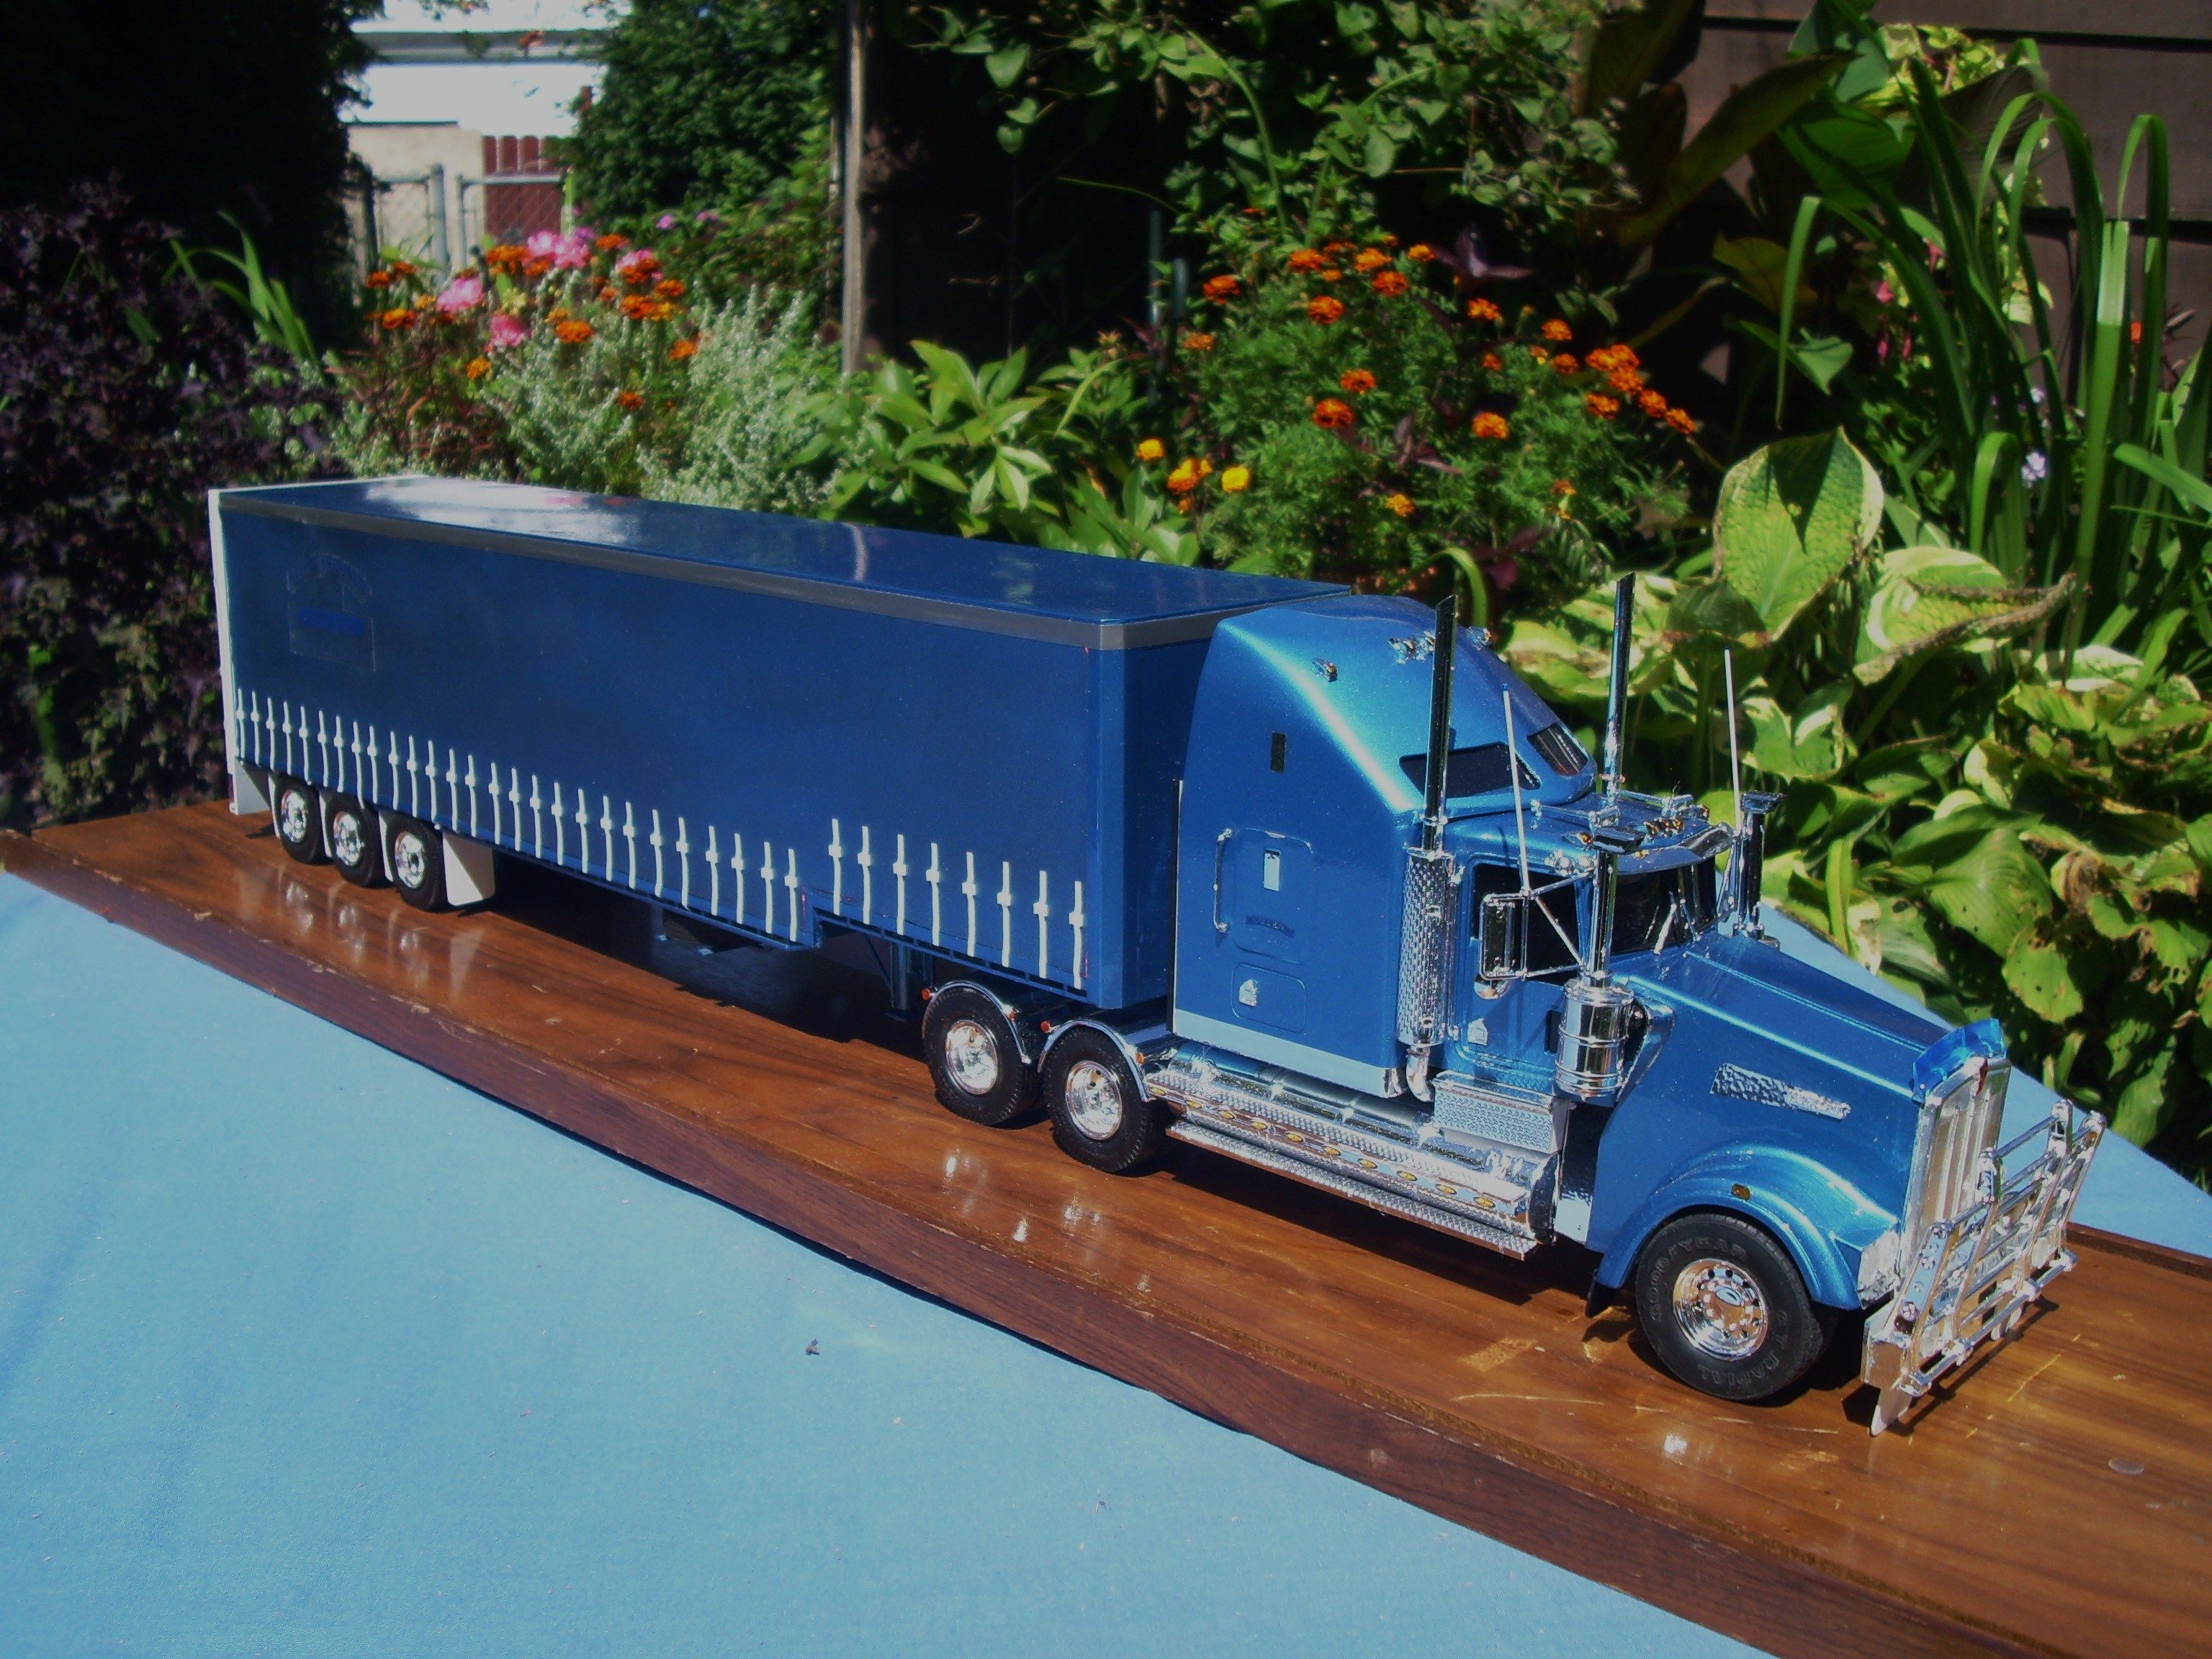 we even have Australian versions of trucks! this was